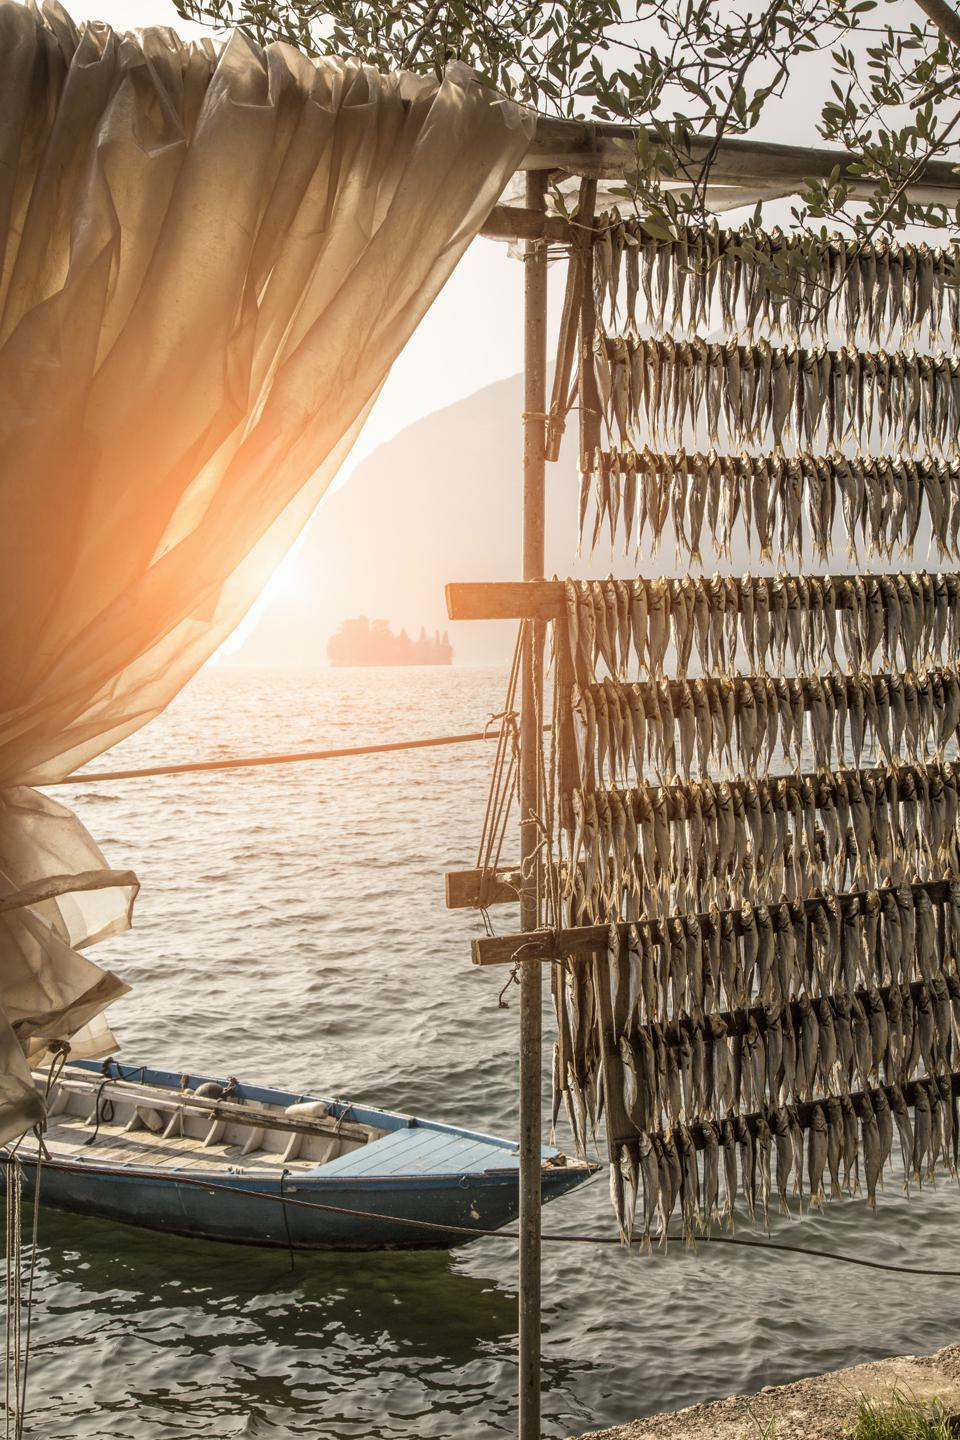 Fish drying, Lake Iseo, Lombardy, Italy